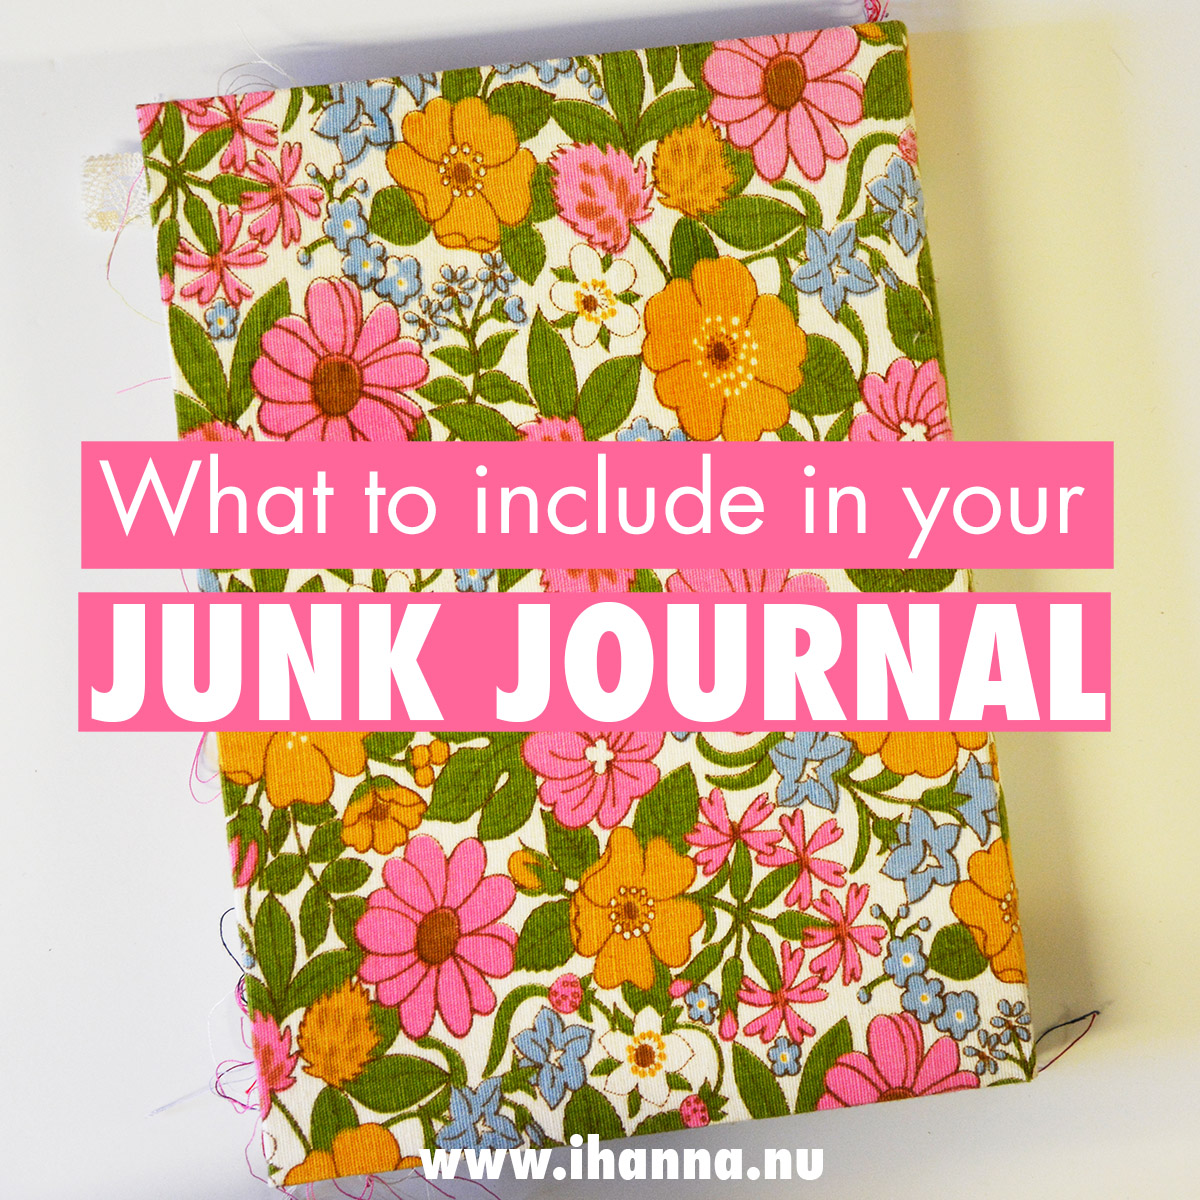 Junk Journal Video: Flip through